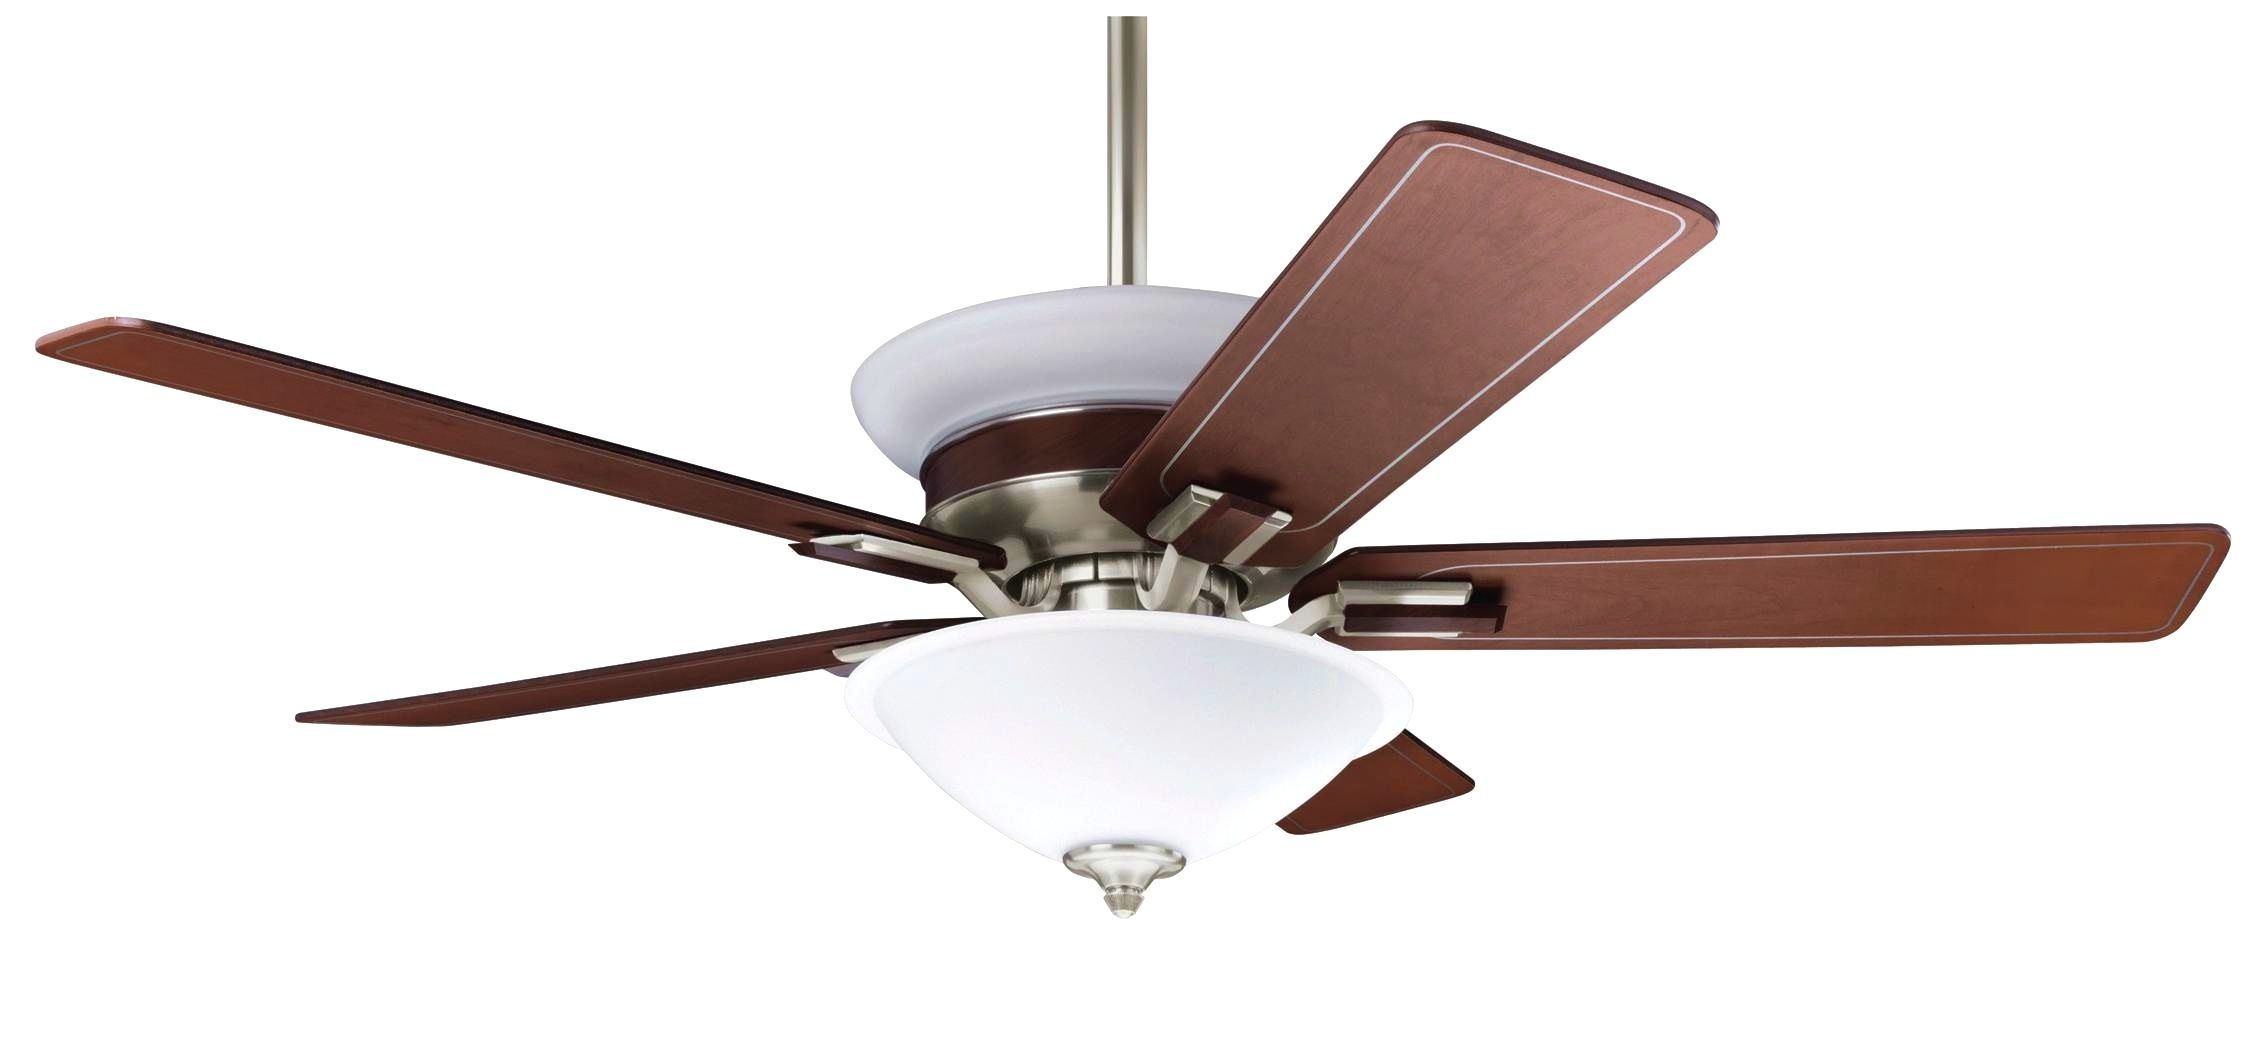 Hunter ceiling fan oil hole httponlinecompliancefo hunter ceiling fan oil hole aloadofball Image collections